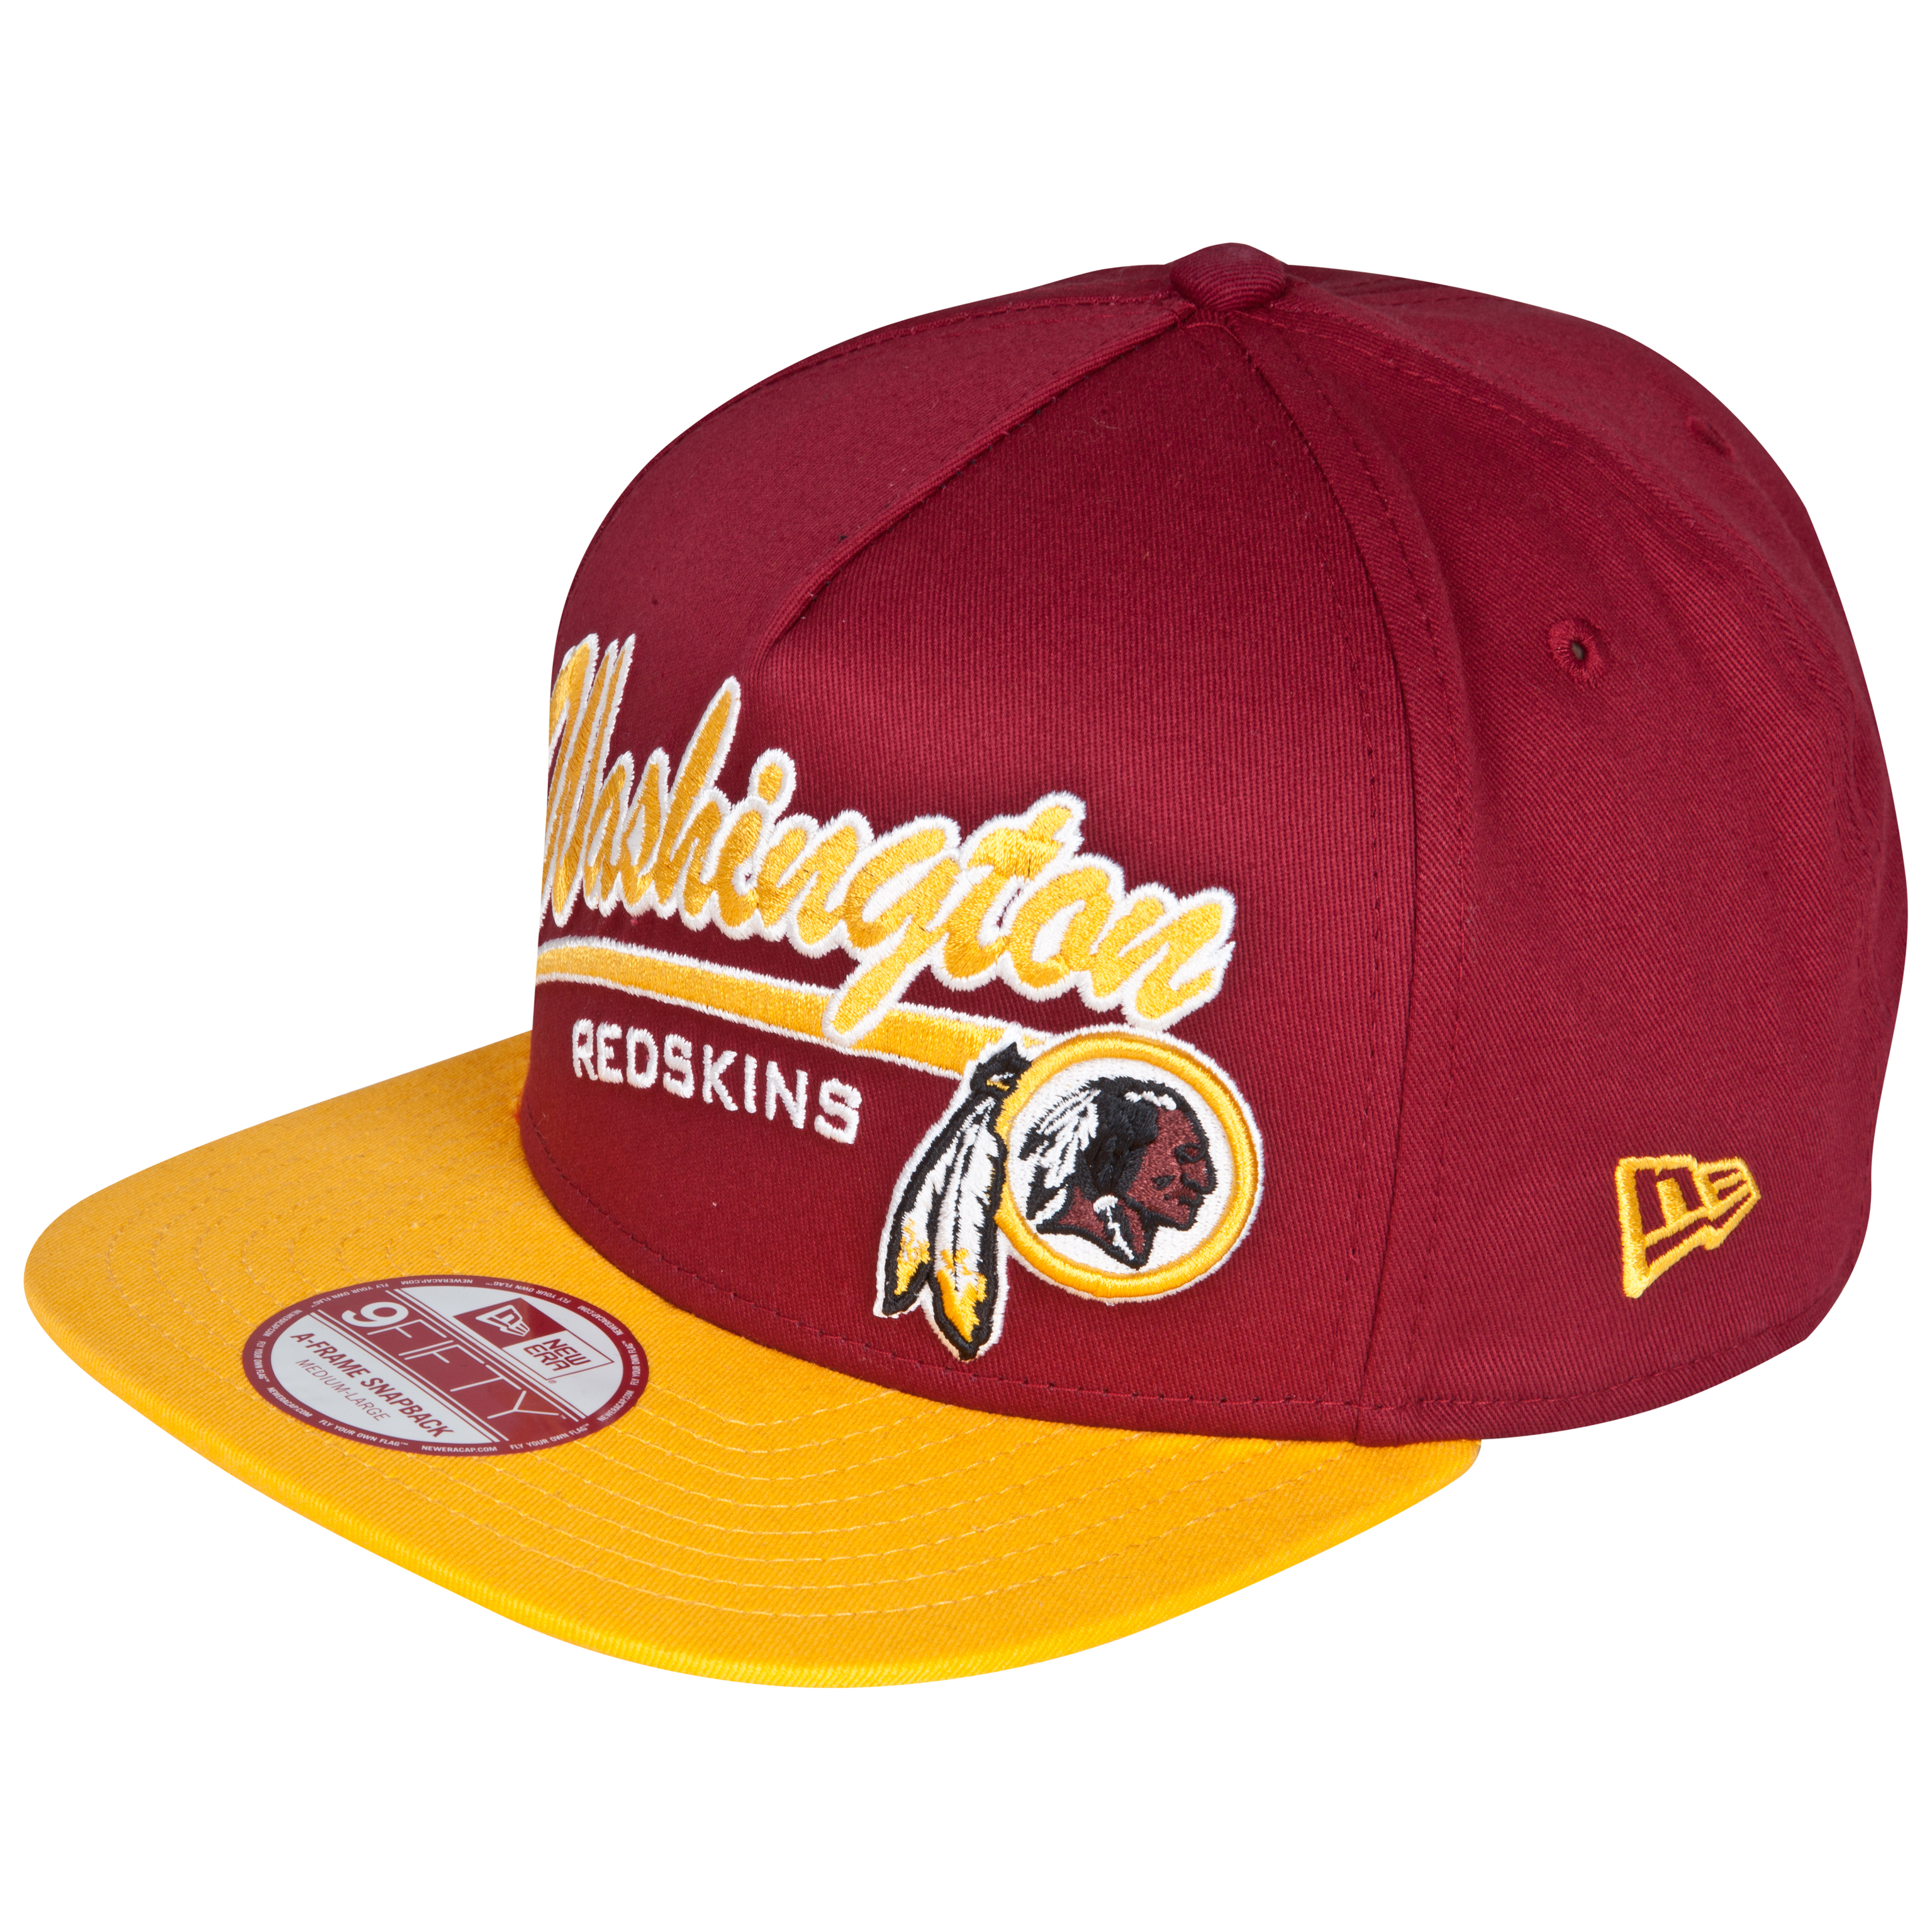 Washington Redskins 9Fifty Script Logo Snapback Cap